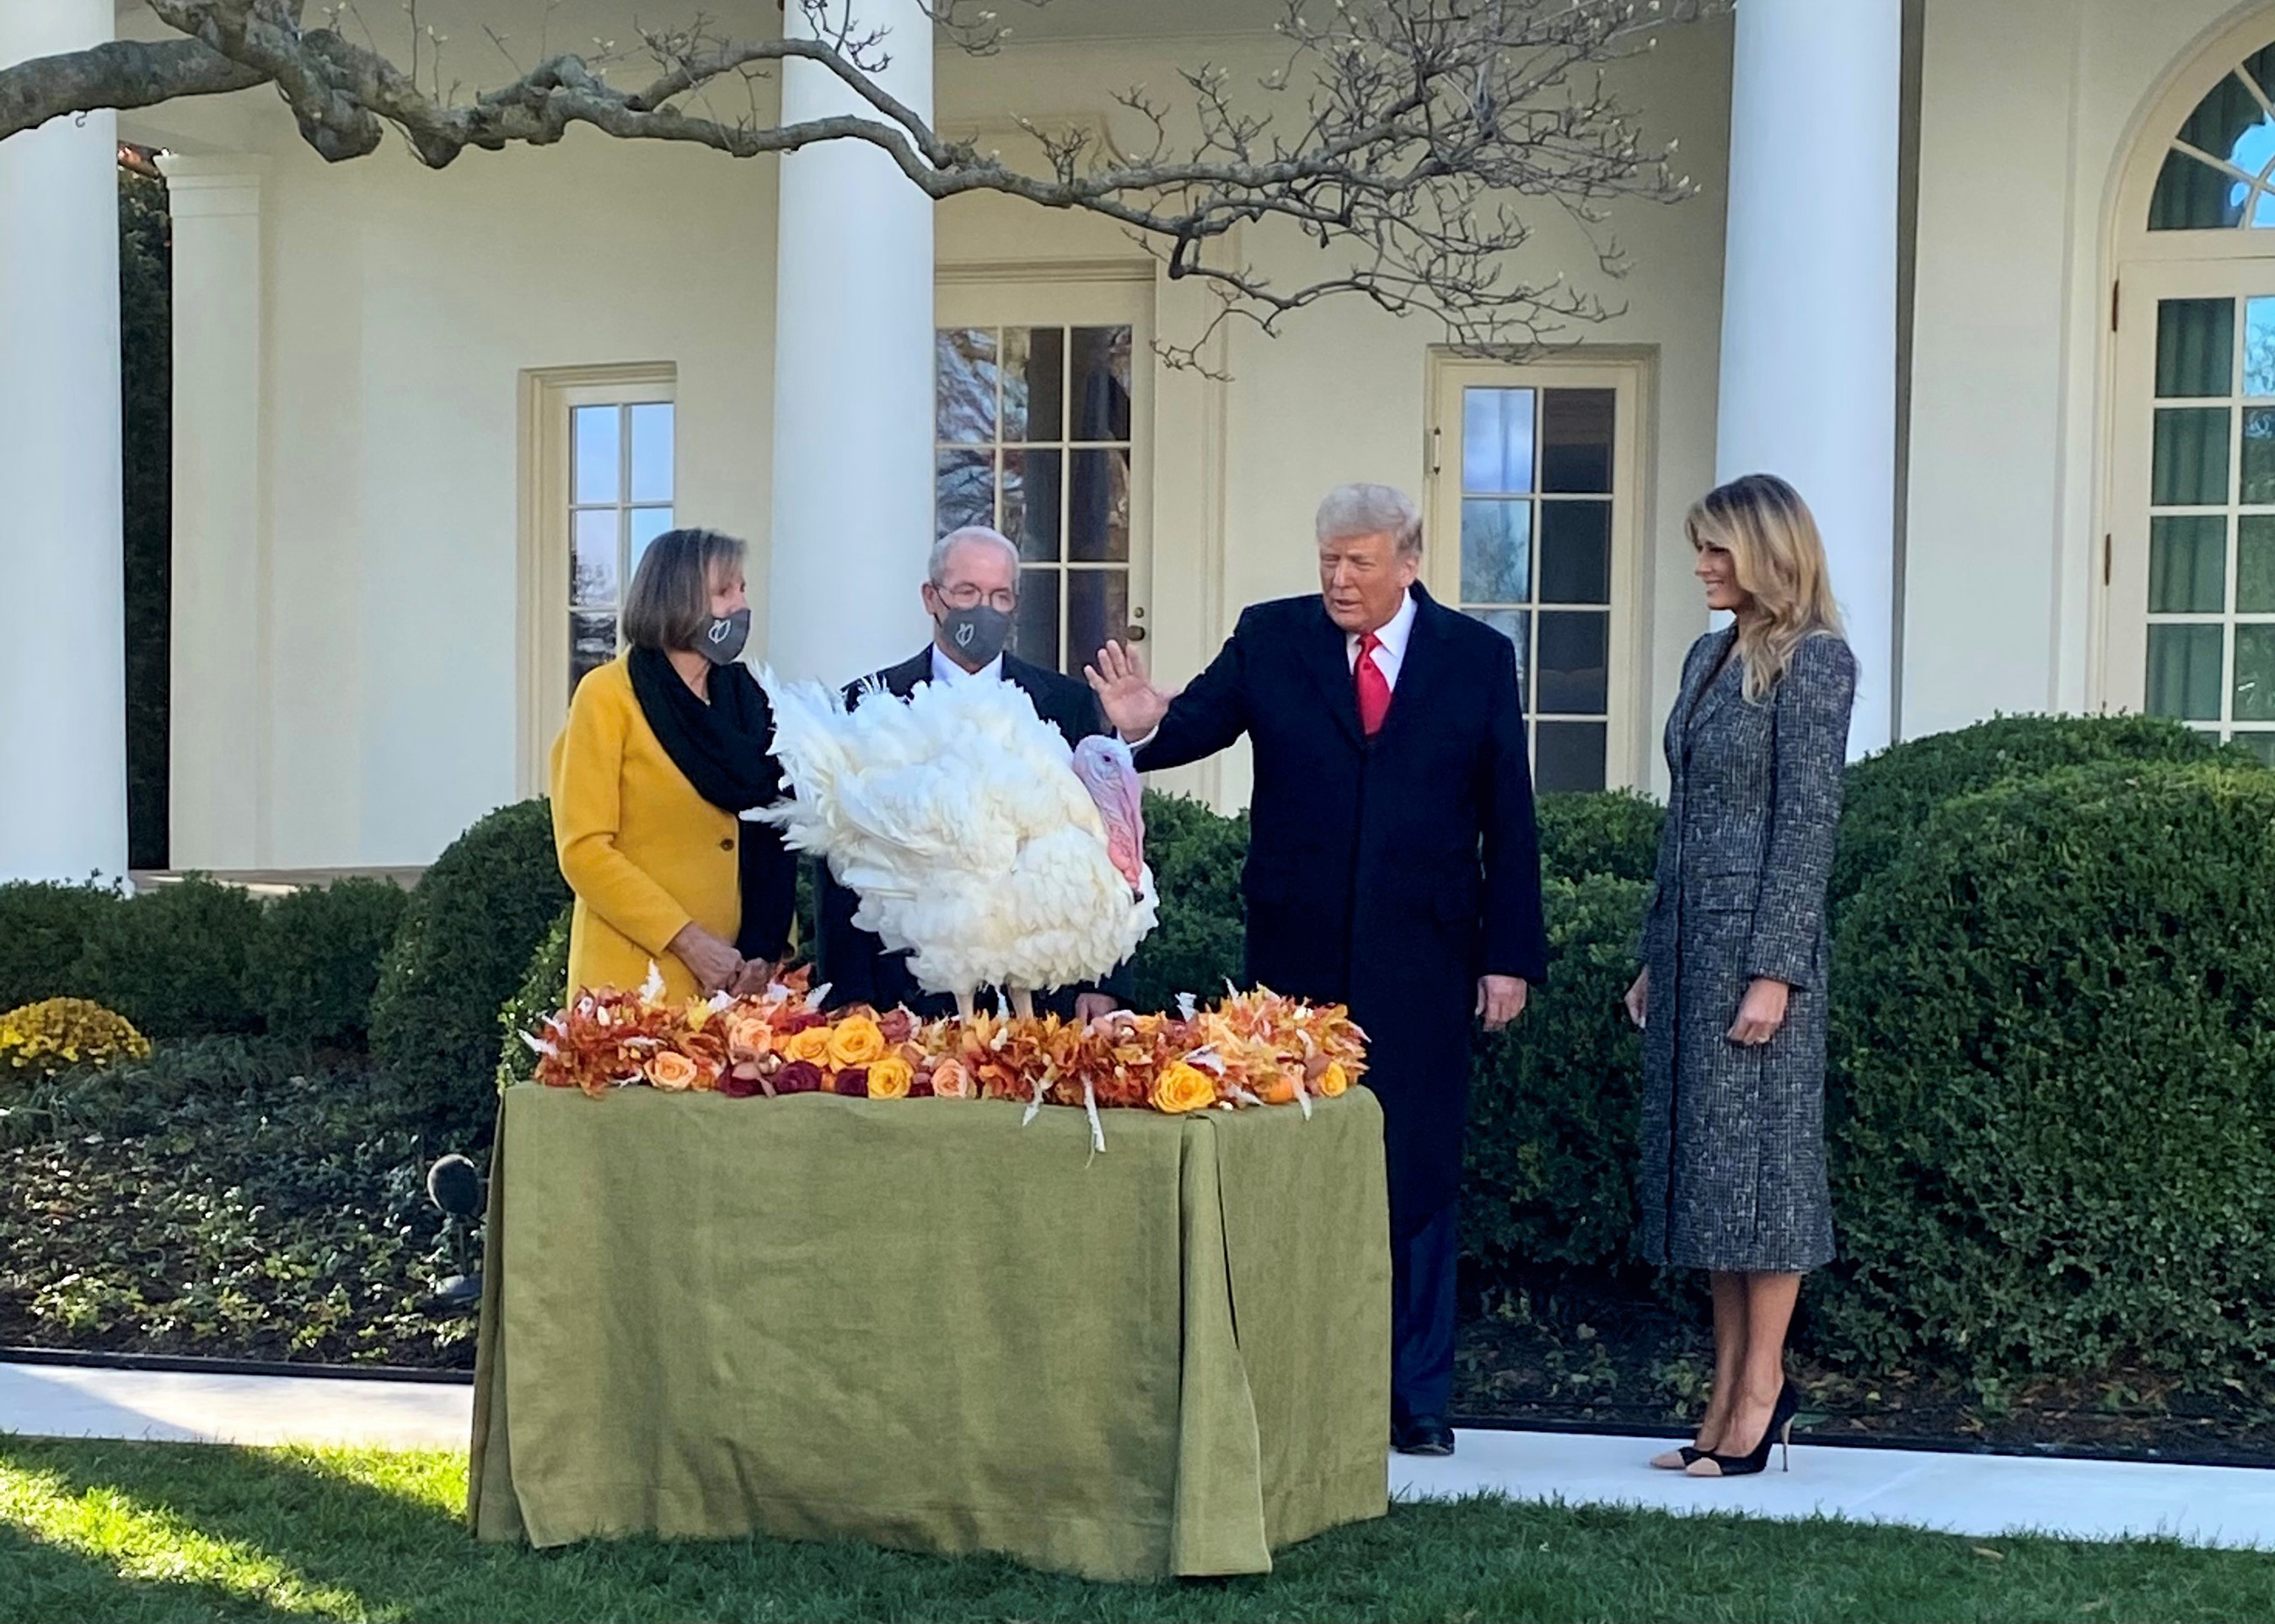 NTF Chairman Ron Kardel, his wife, Susie, and the First Lady look on as Corn is officially pardoned by President Trump.